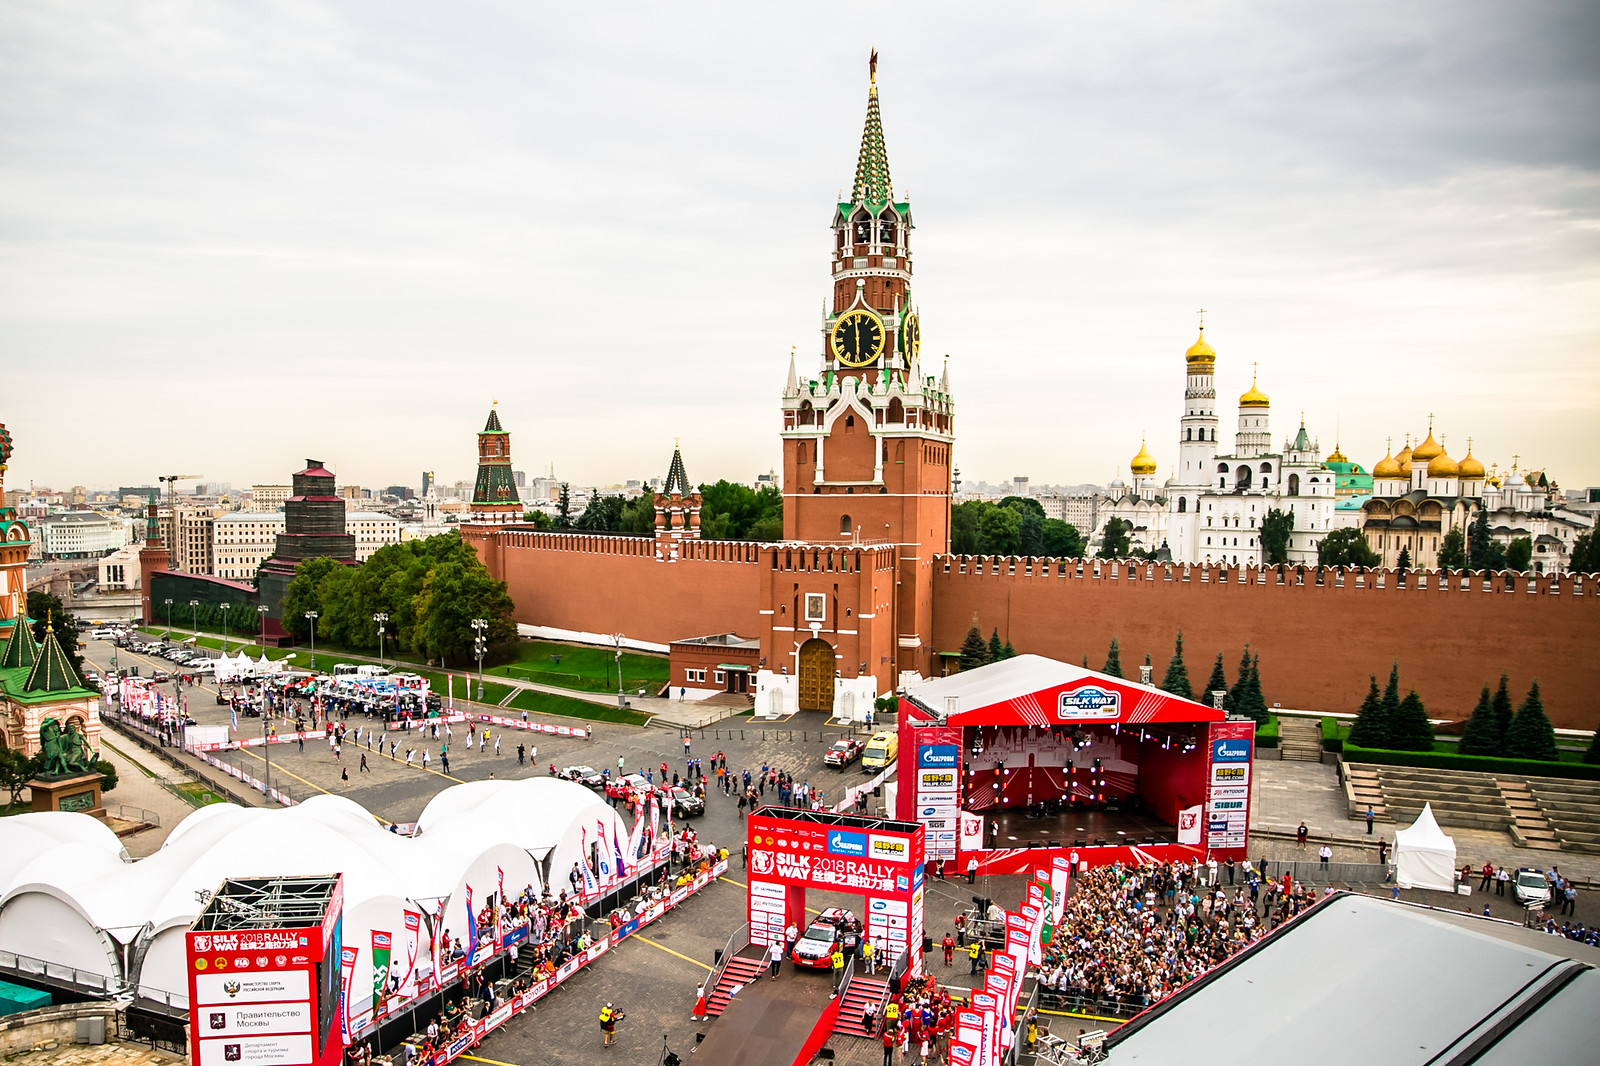 Silk Way Rally 2018 Finish Ceremony in Moscow